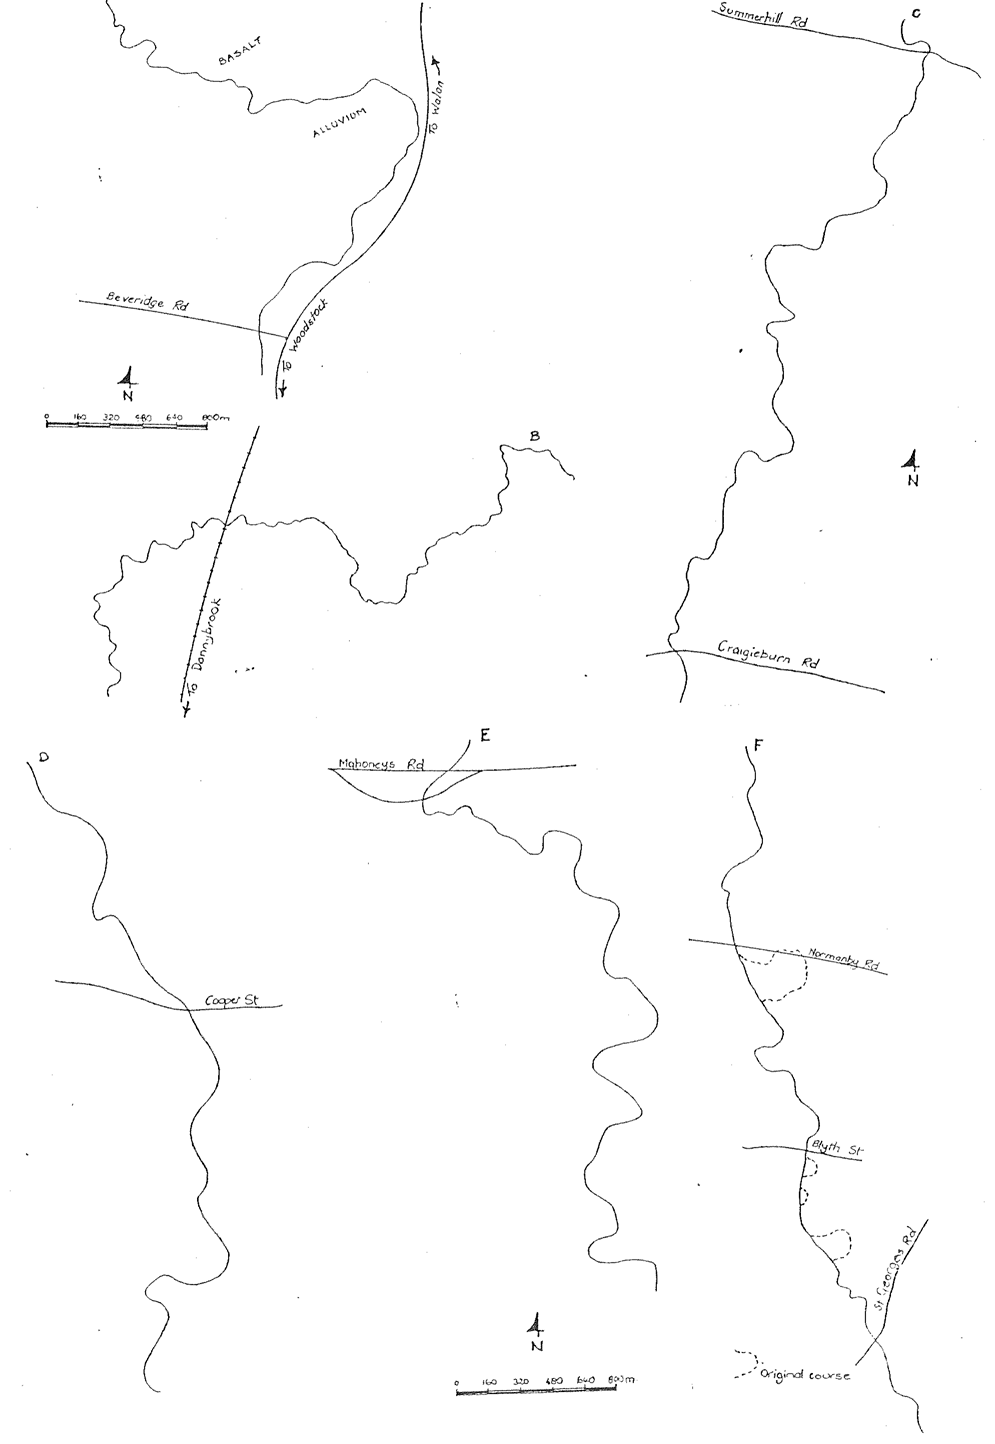 Drawing showing meander patterns in the Merri Creek valley